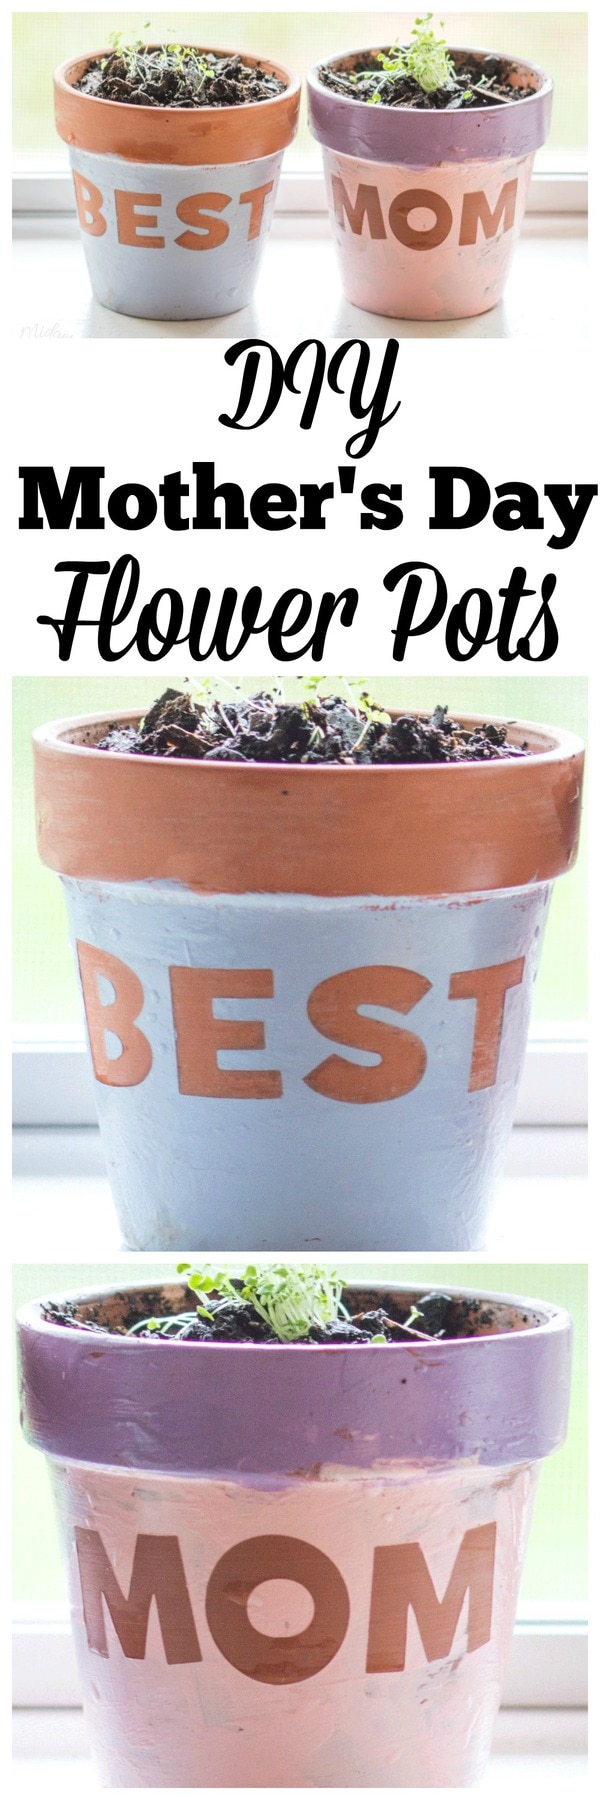 Diy Mother's Day Flower Pots - MidgetMomma - This is a great DIY Mother's Day gift. Easy enough that the uncrafty Dad can totally do this fun Mother's Day DIY git.